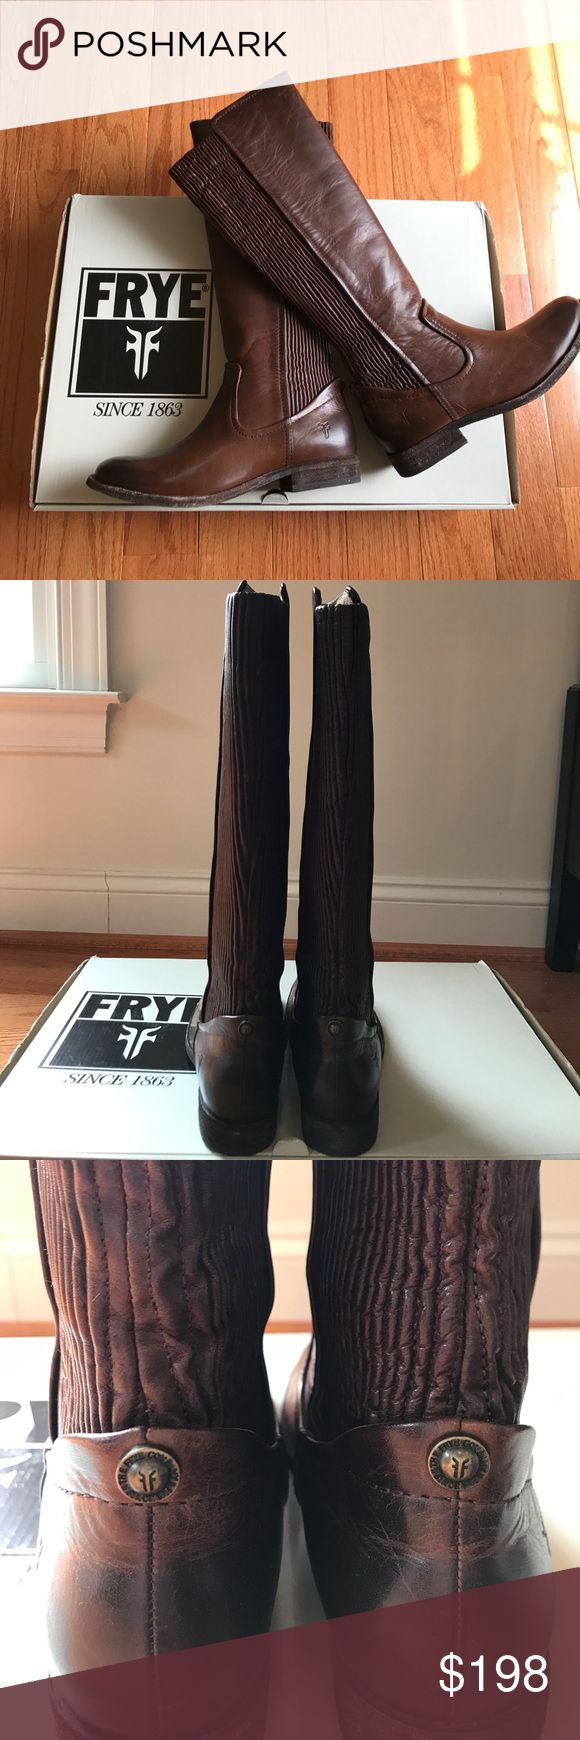 "Frye Melissa Tall Scrunch Boots Brand New Tall Melissa Tall Scrunch Boots 🔶Round Toe🔶Leather Scrunch Back Panel Detail🔶Pull On🔶16.25 Shaft Height🔶1"" Heel🔶Boots have a Few Minor Scratches from Manufacturer as Seen in Last Pic🔶Retail Value of $498🔶Feel Free to Make Me An Offer Frye Shoes"